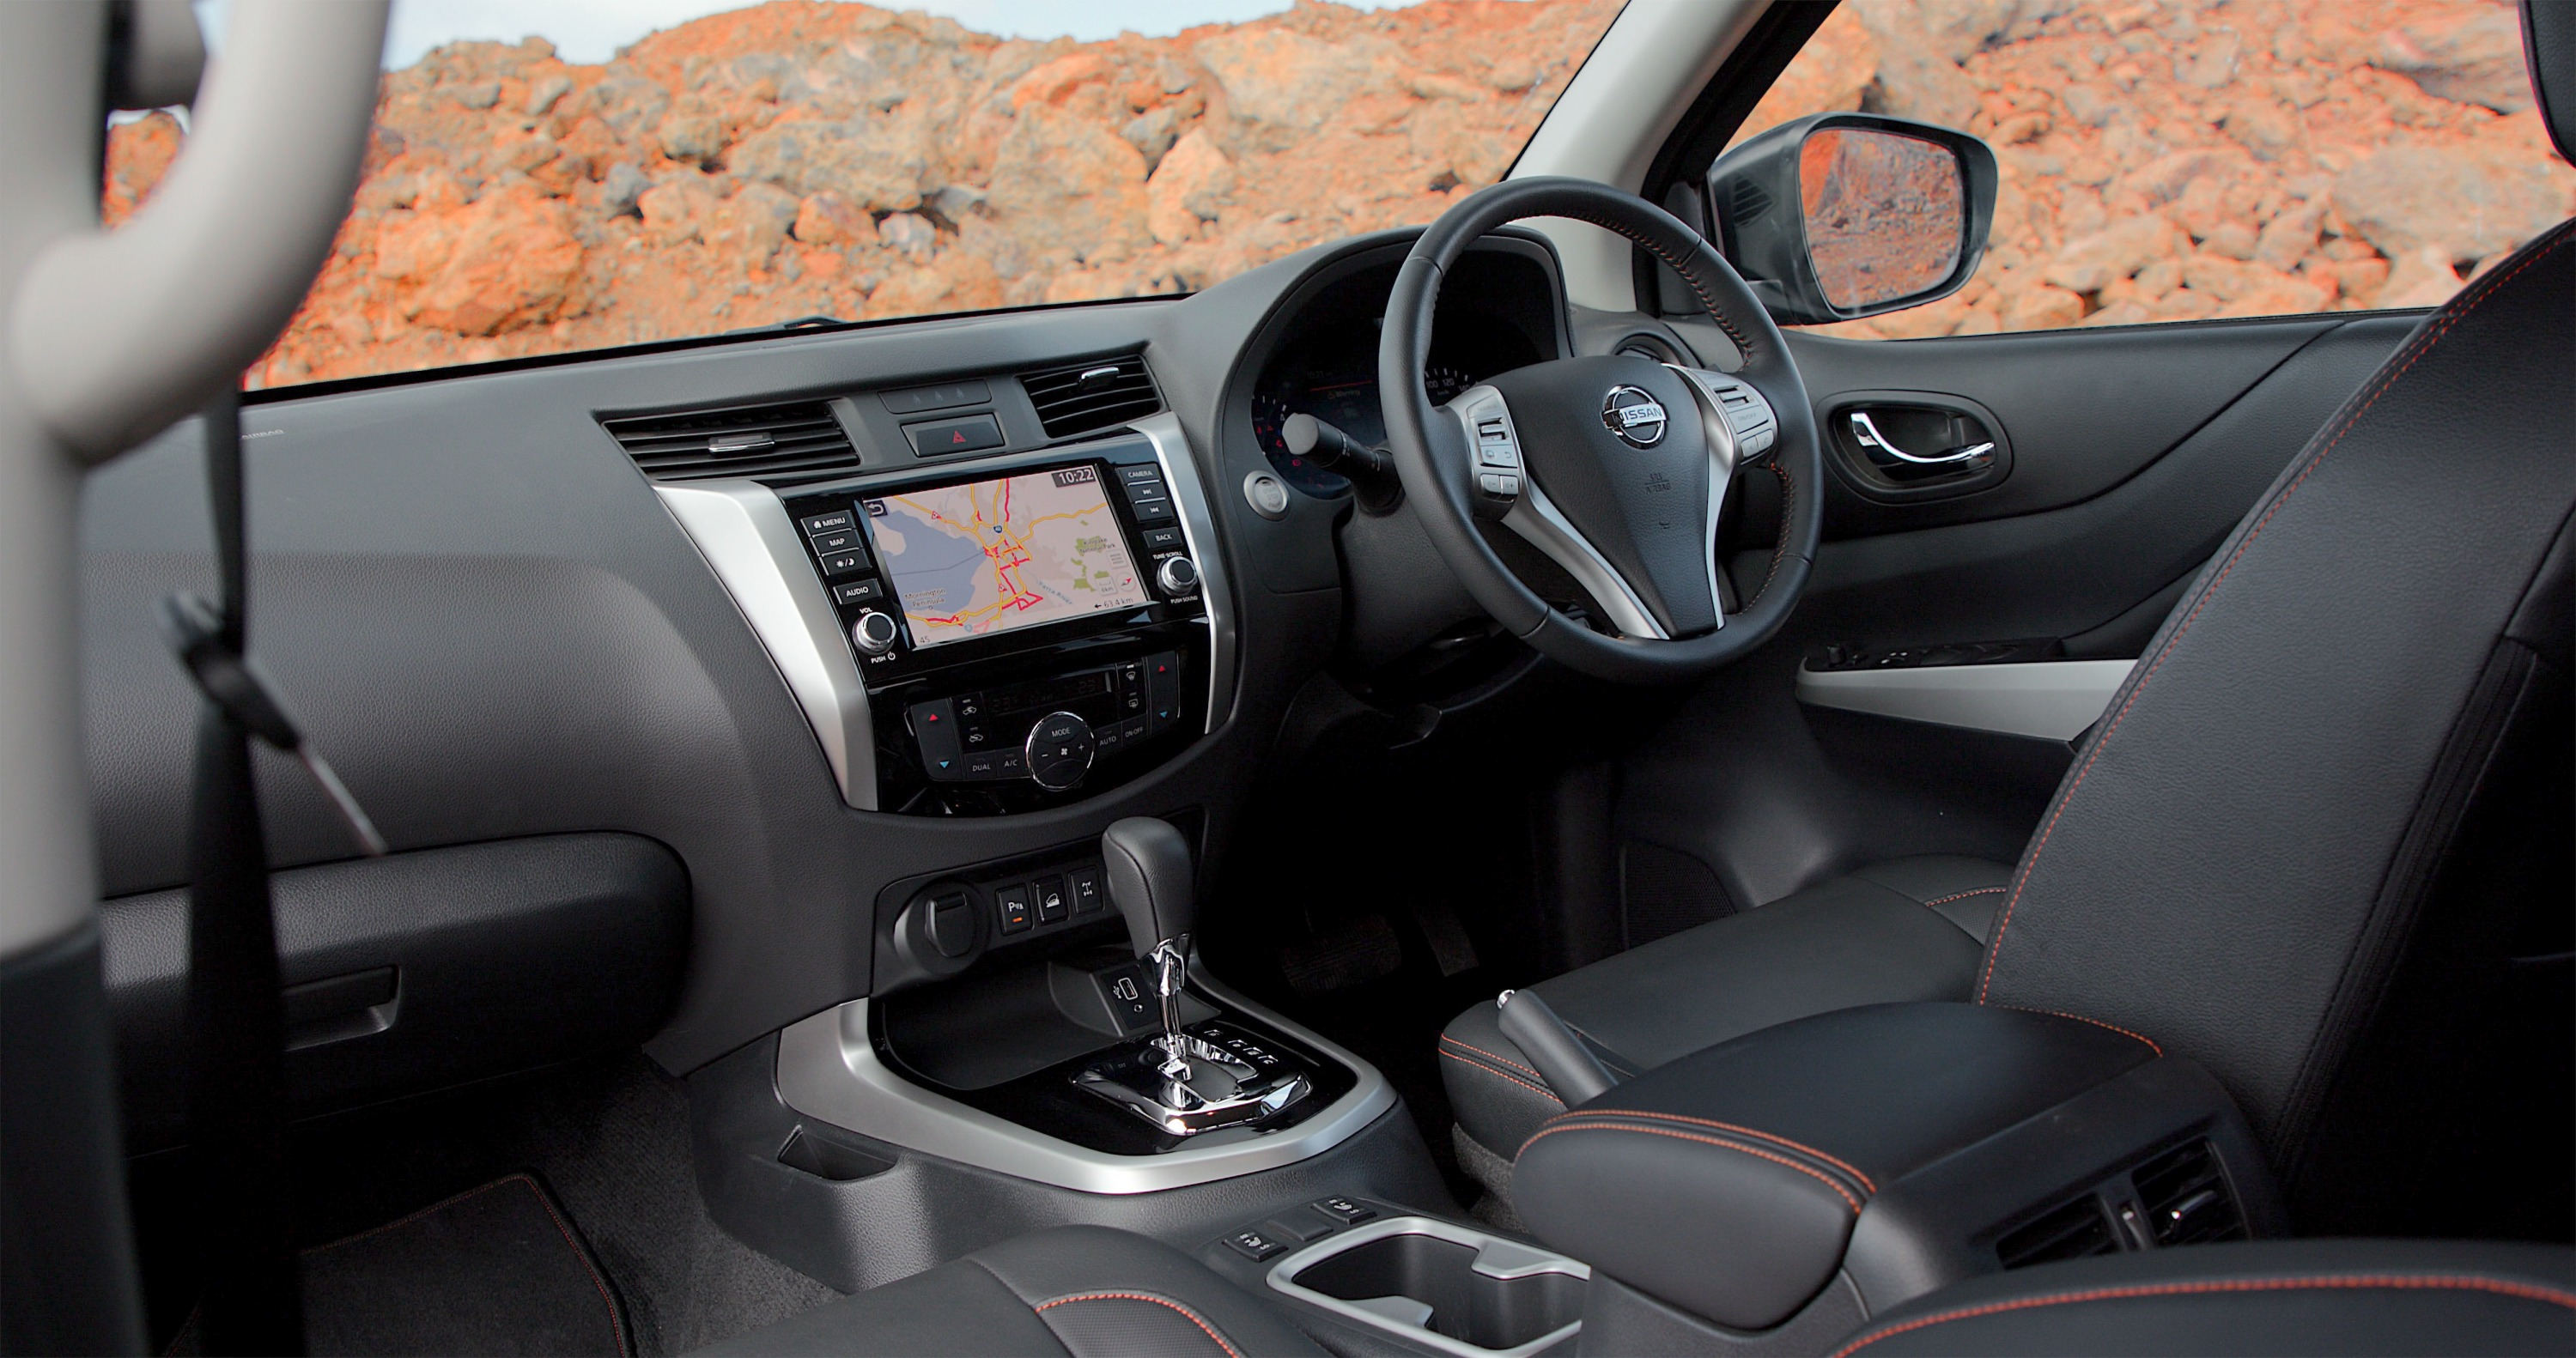 Nissan Navara N-TREK Warrior 21 interior